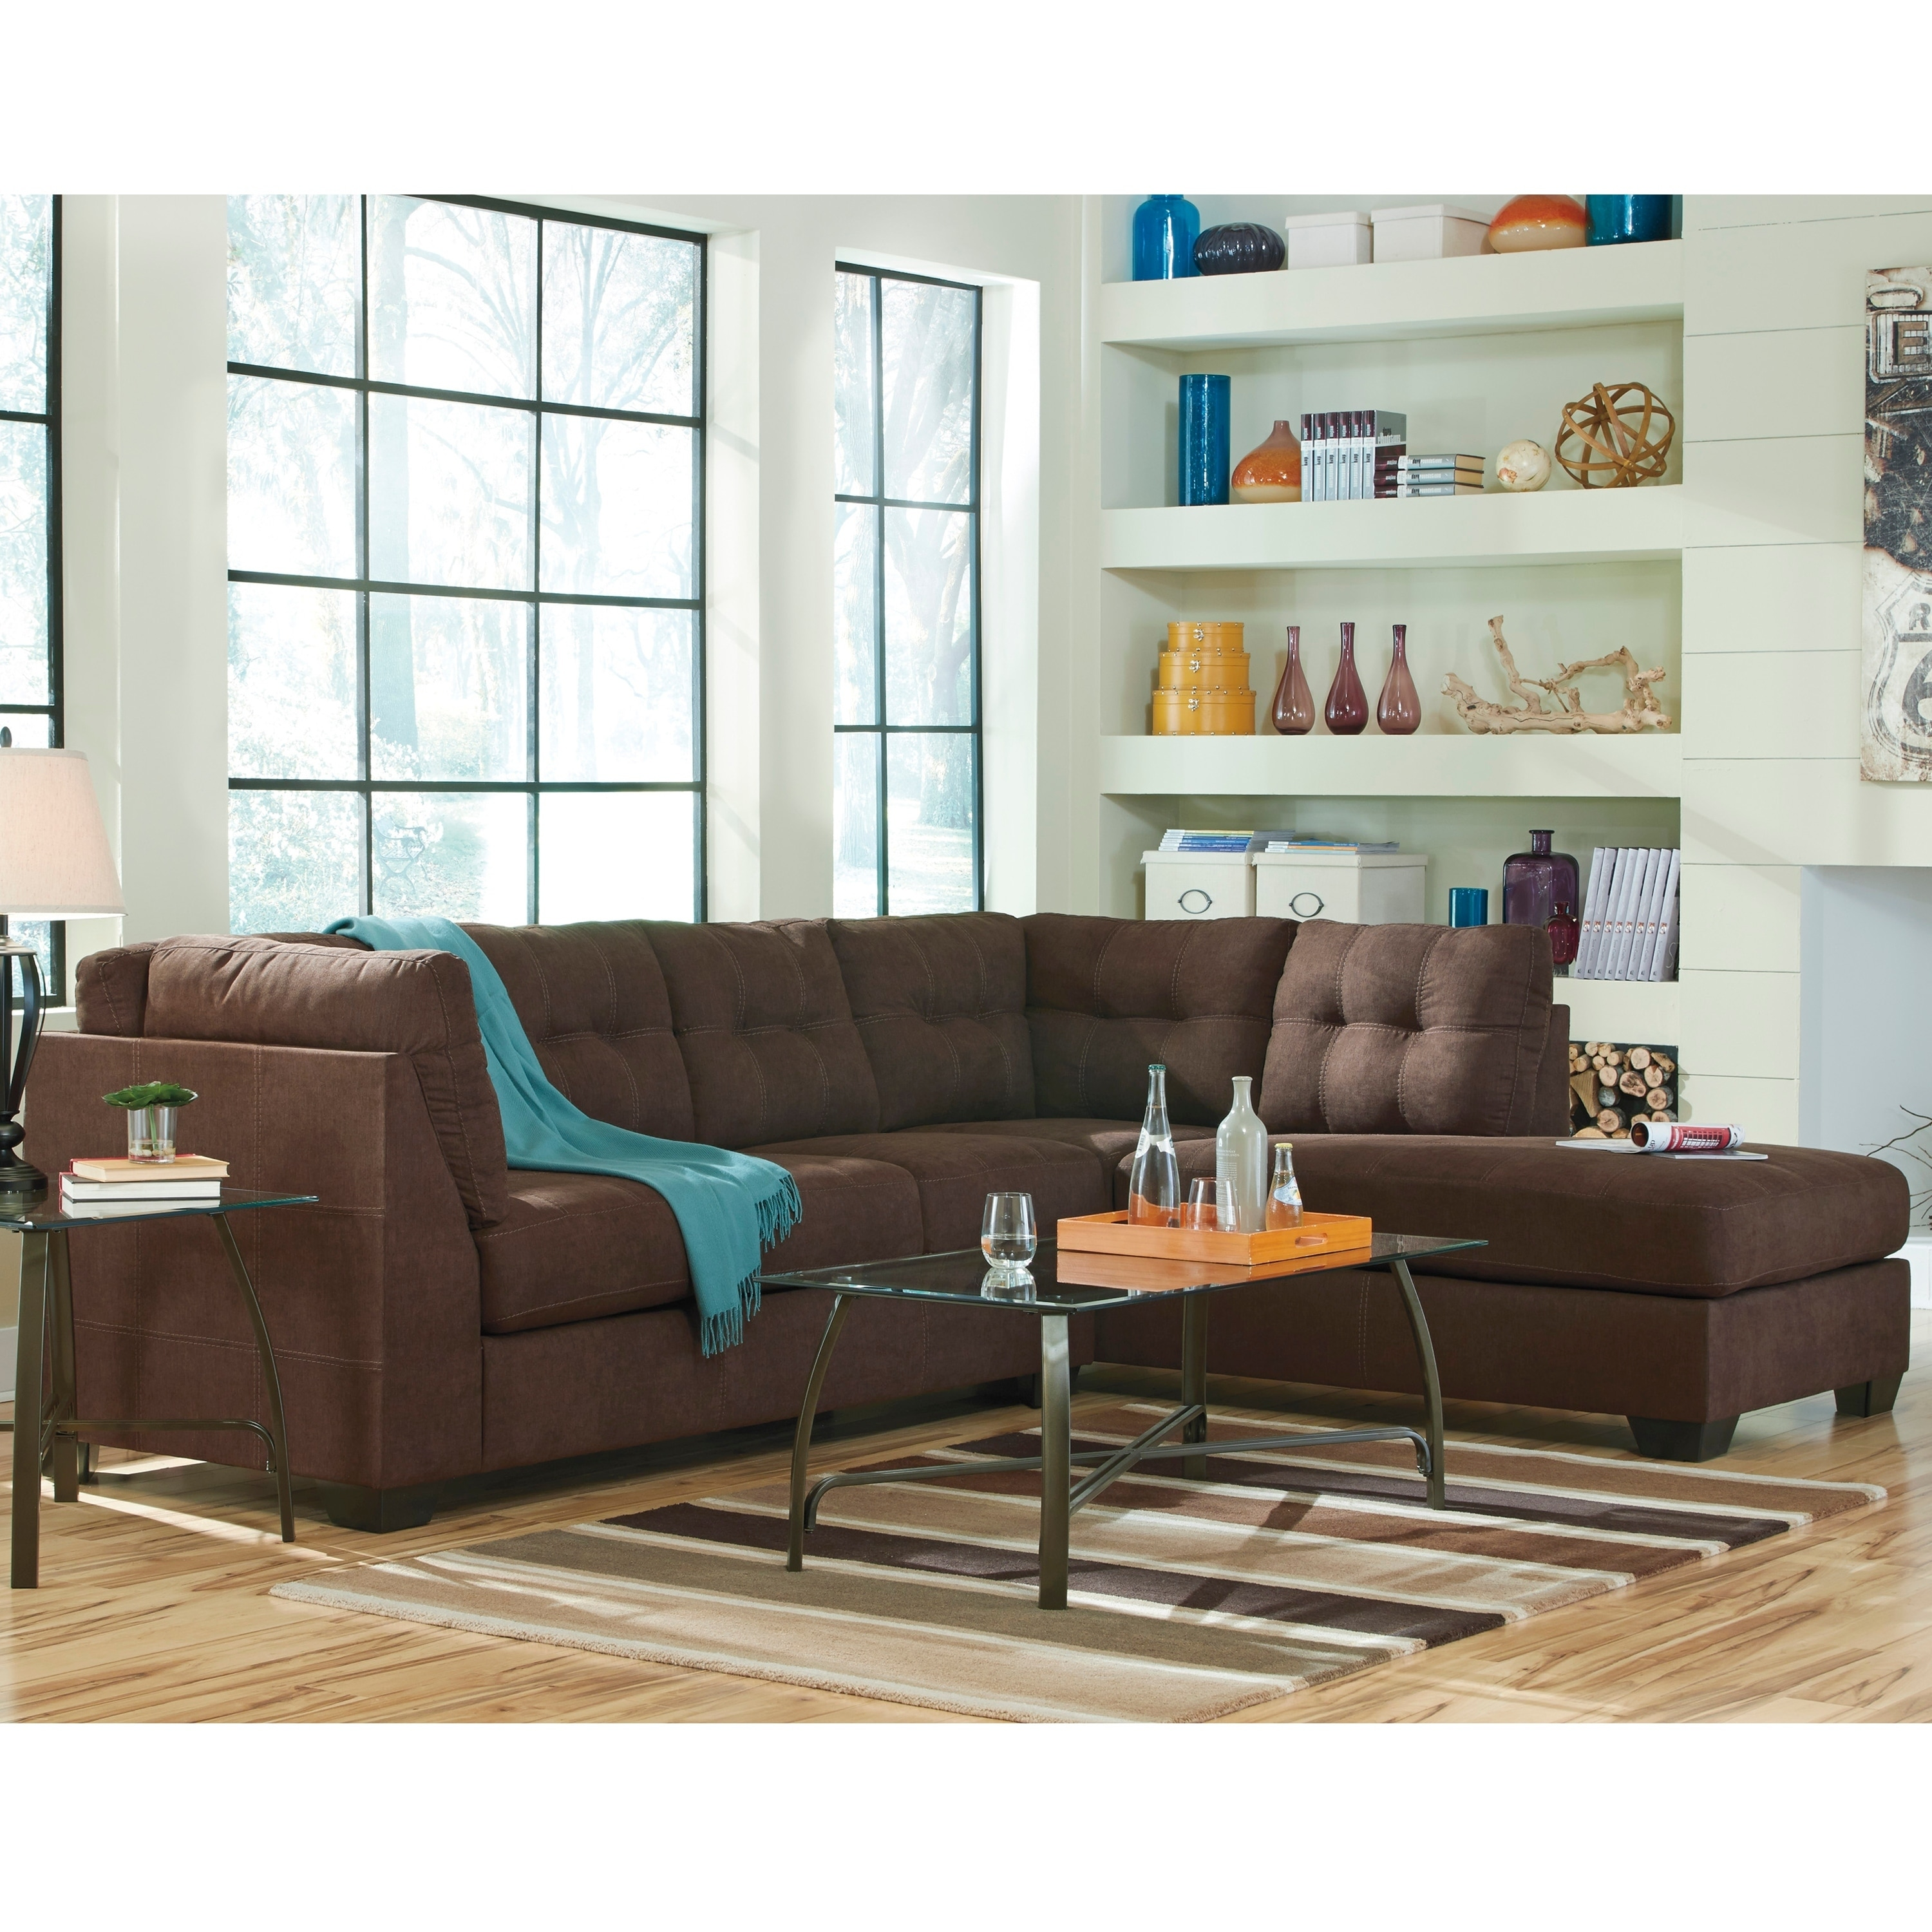 Fabulous Benchcraft Maier Microfiber Sectional Sofa With Right Side Facing Chaise Squirreltailoven Fun Painted Chair Ideas Images Squirreltailovenorg